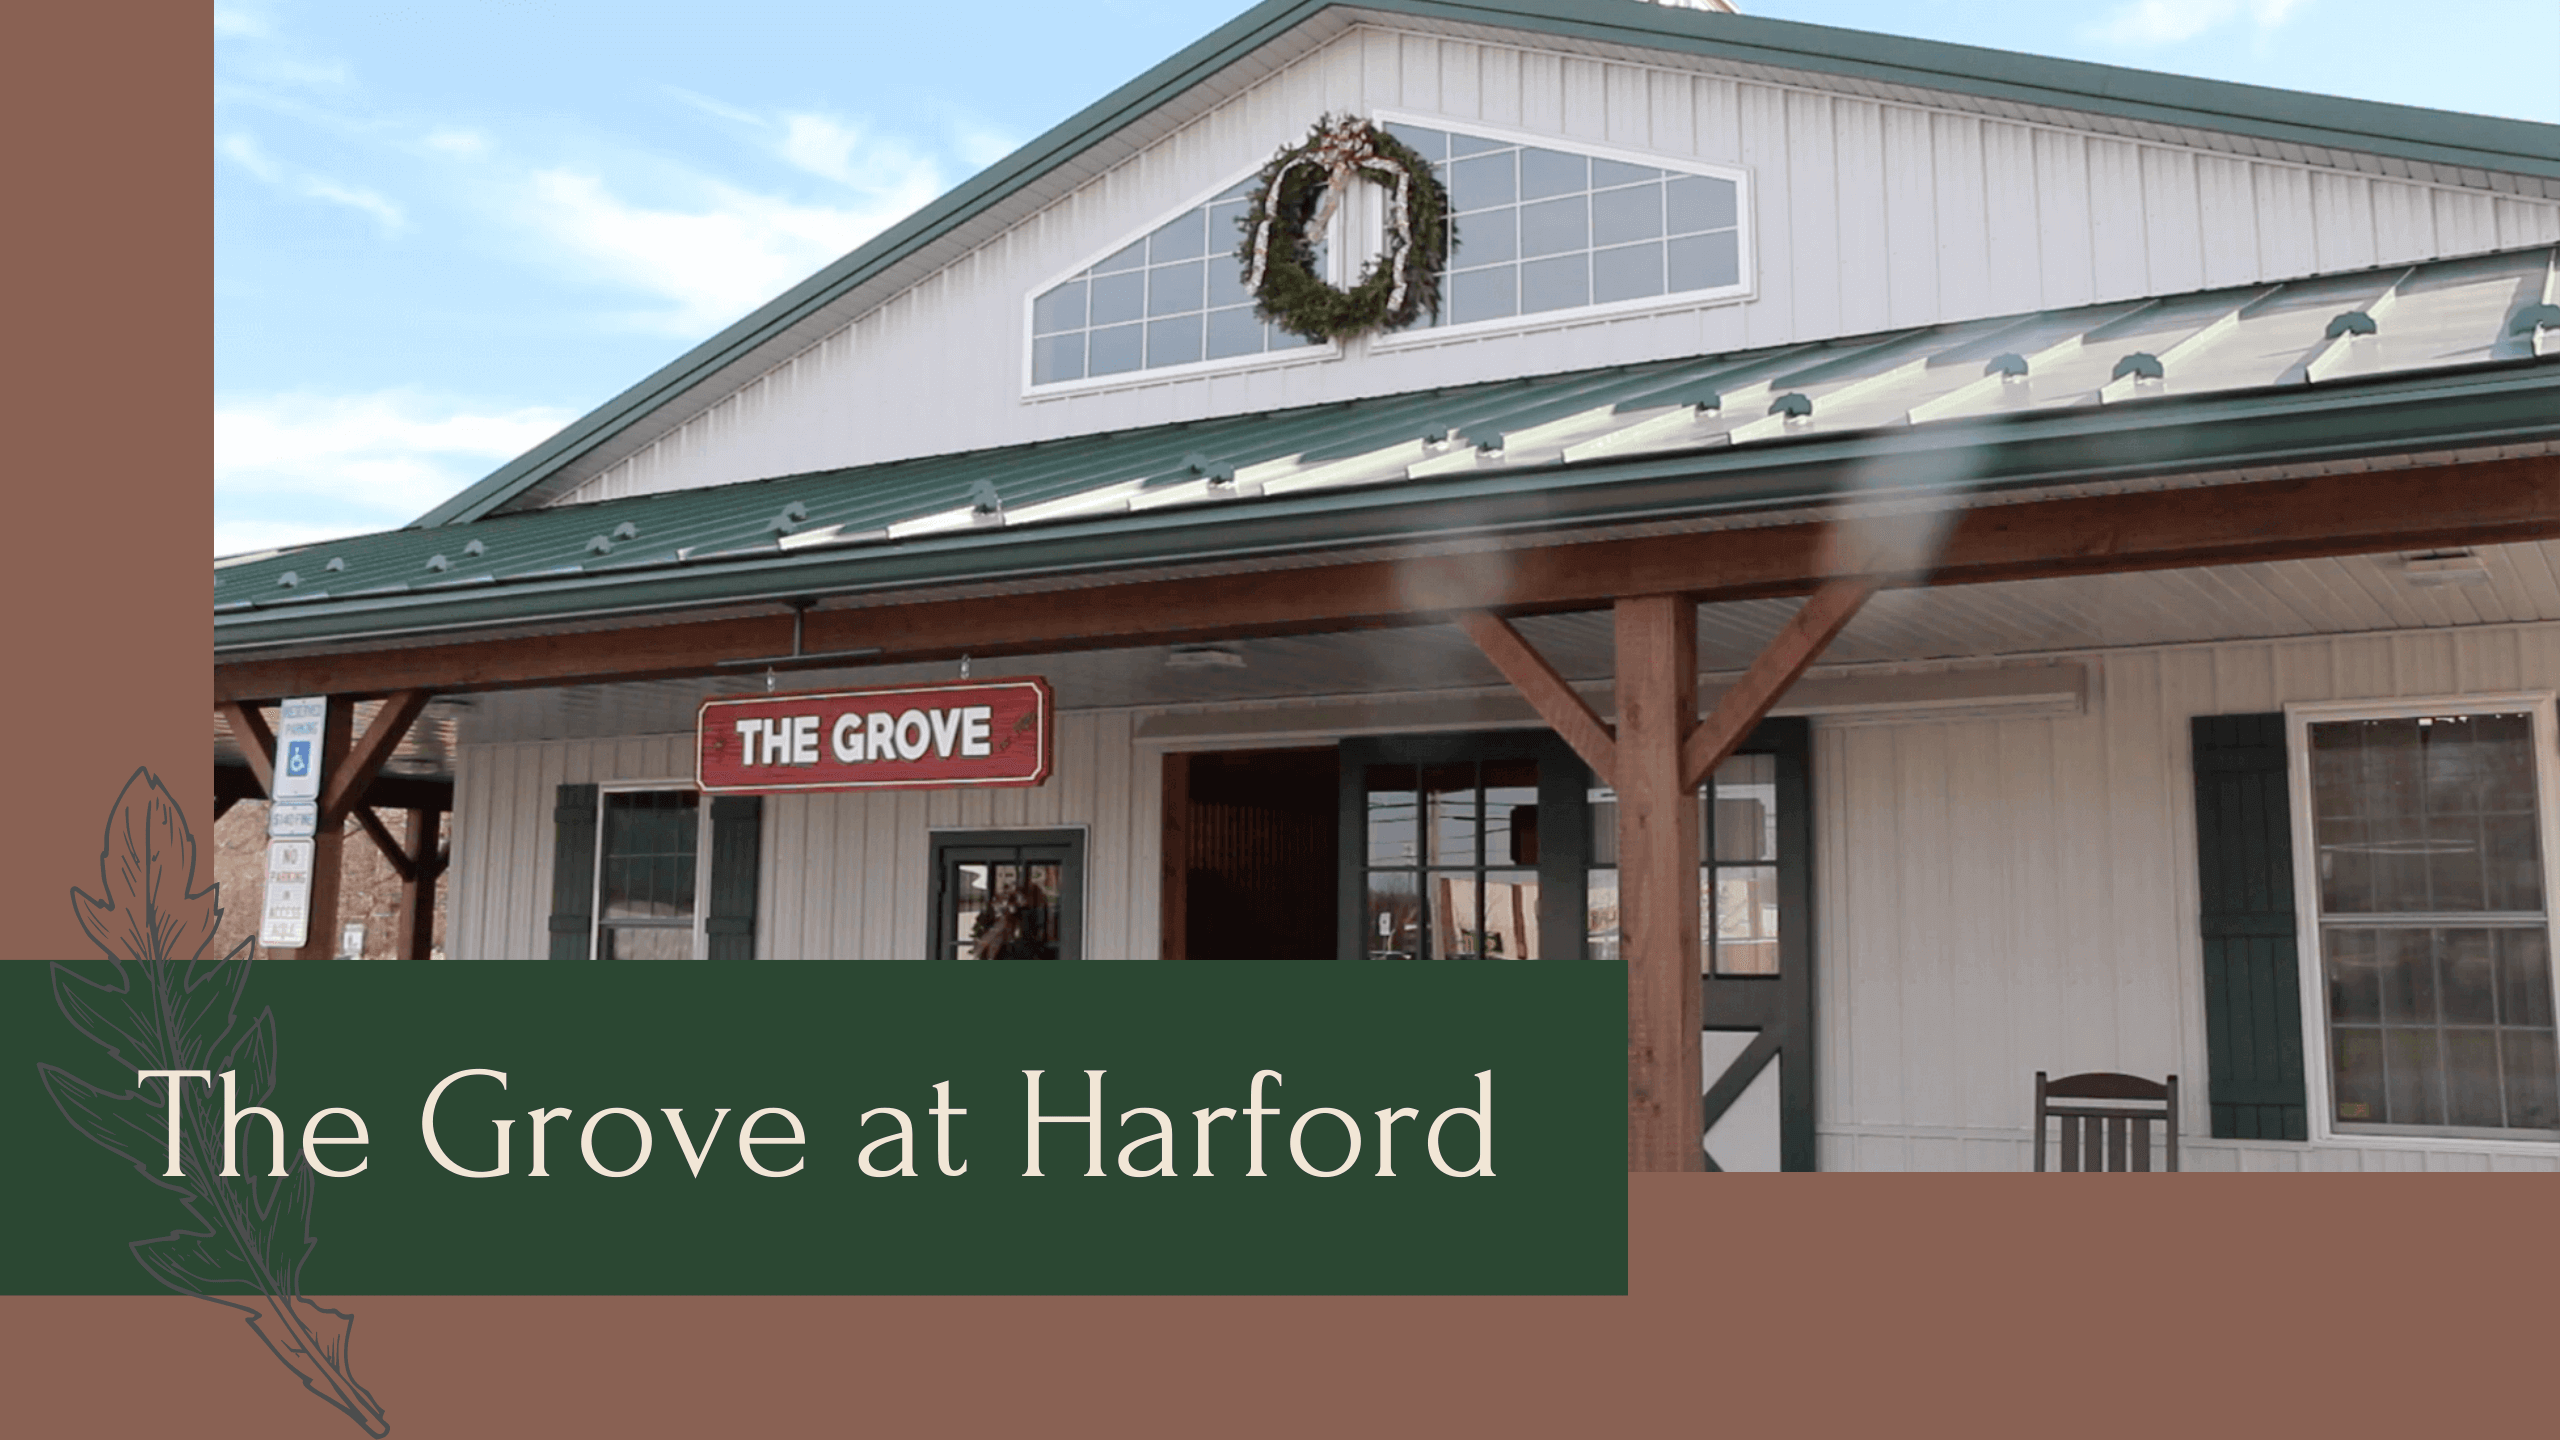 The Grove at Harford